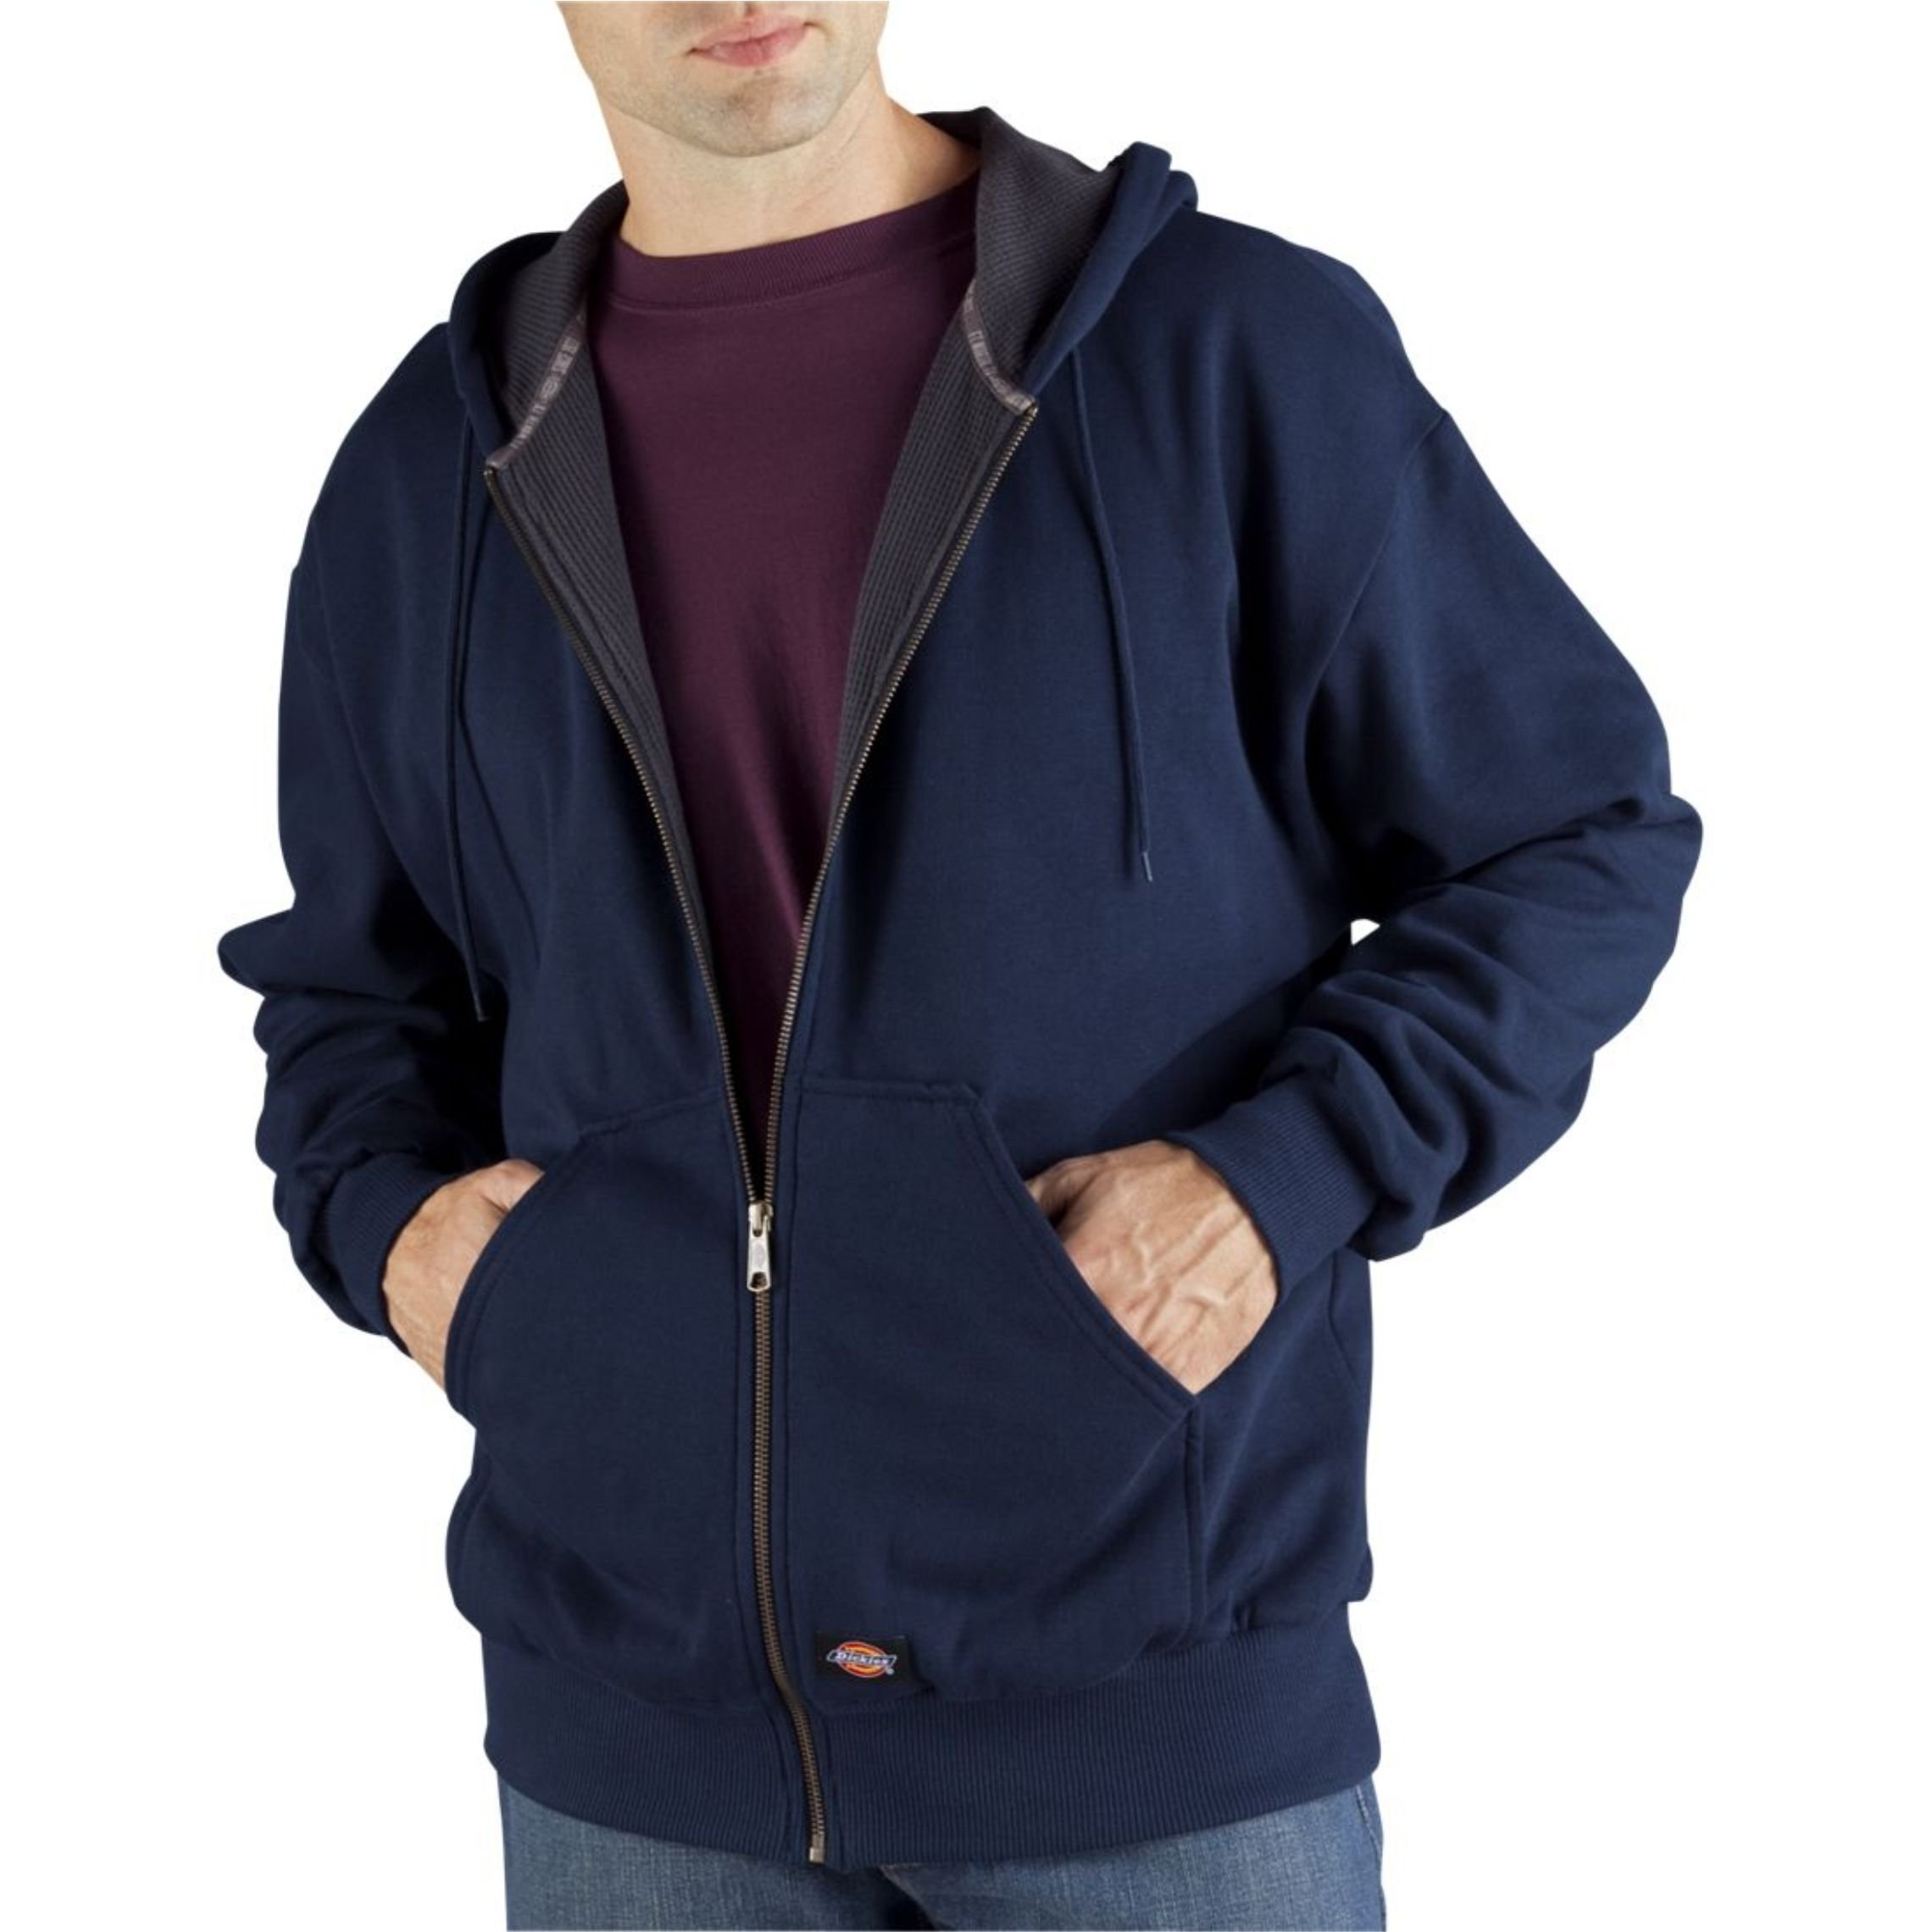 Dickies Men's Thermal Lined Fleece Jacket, Dark Navy, X-Large by Dickies